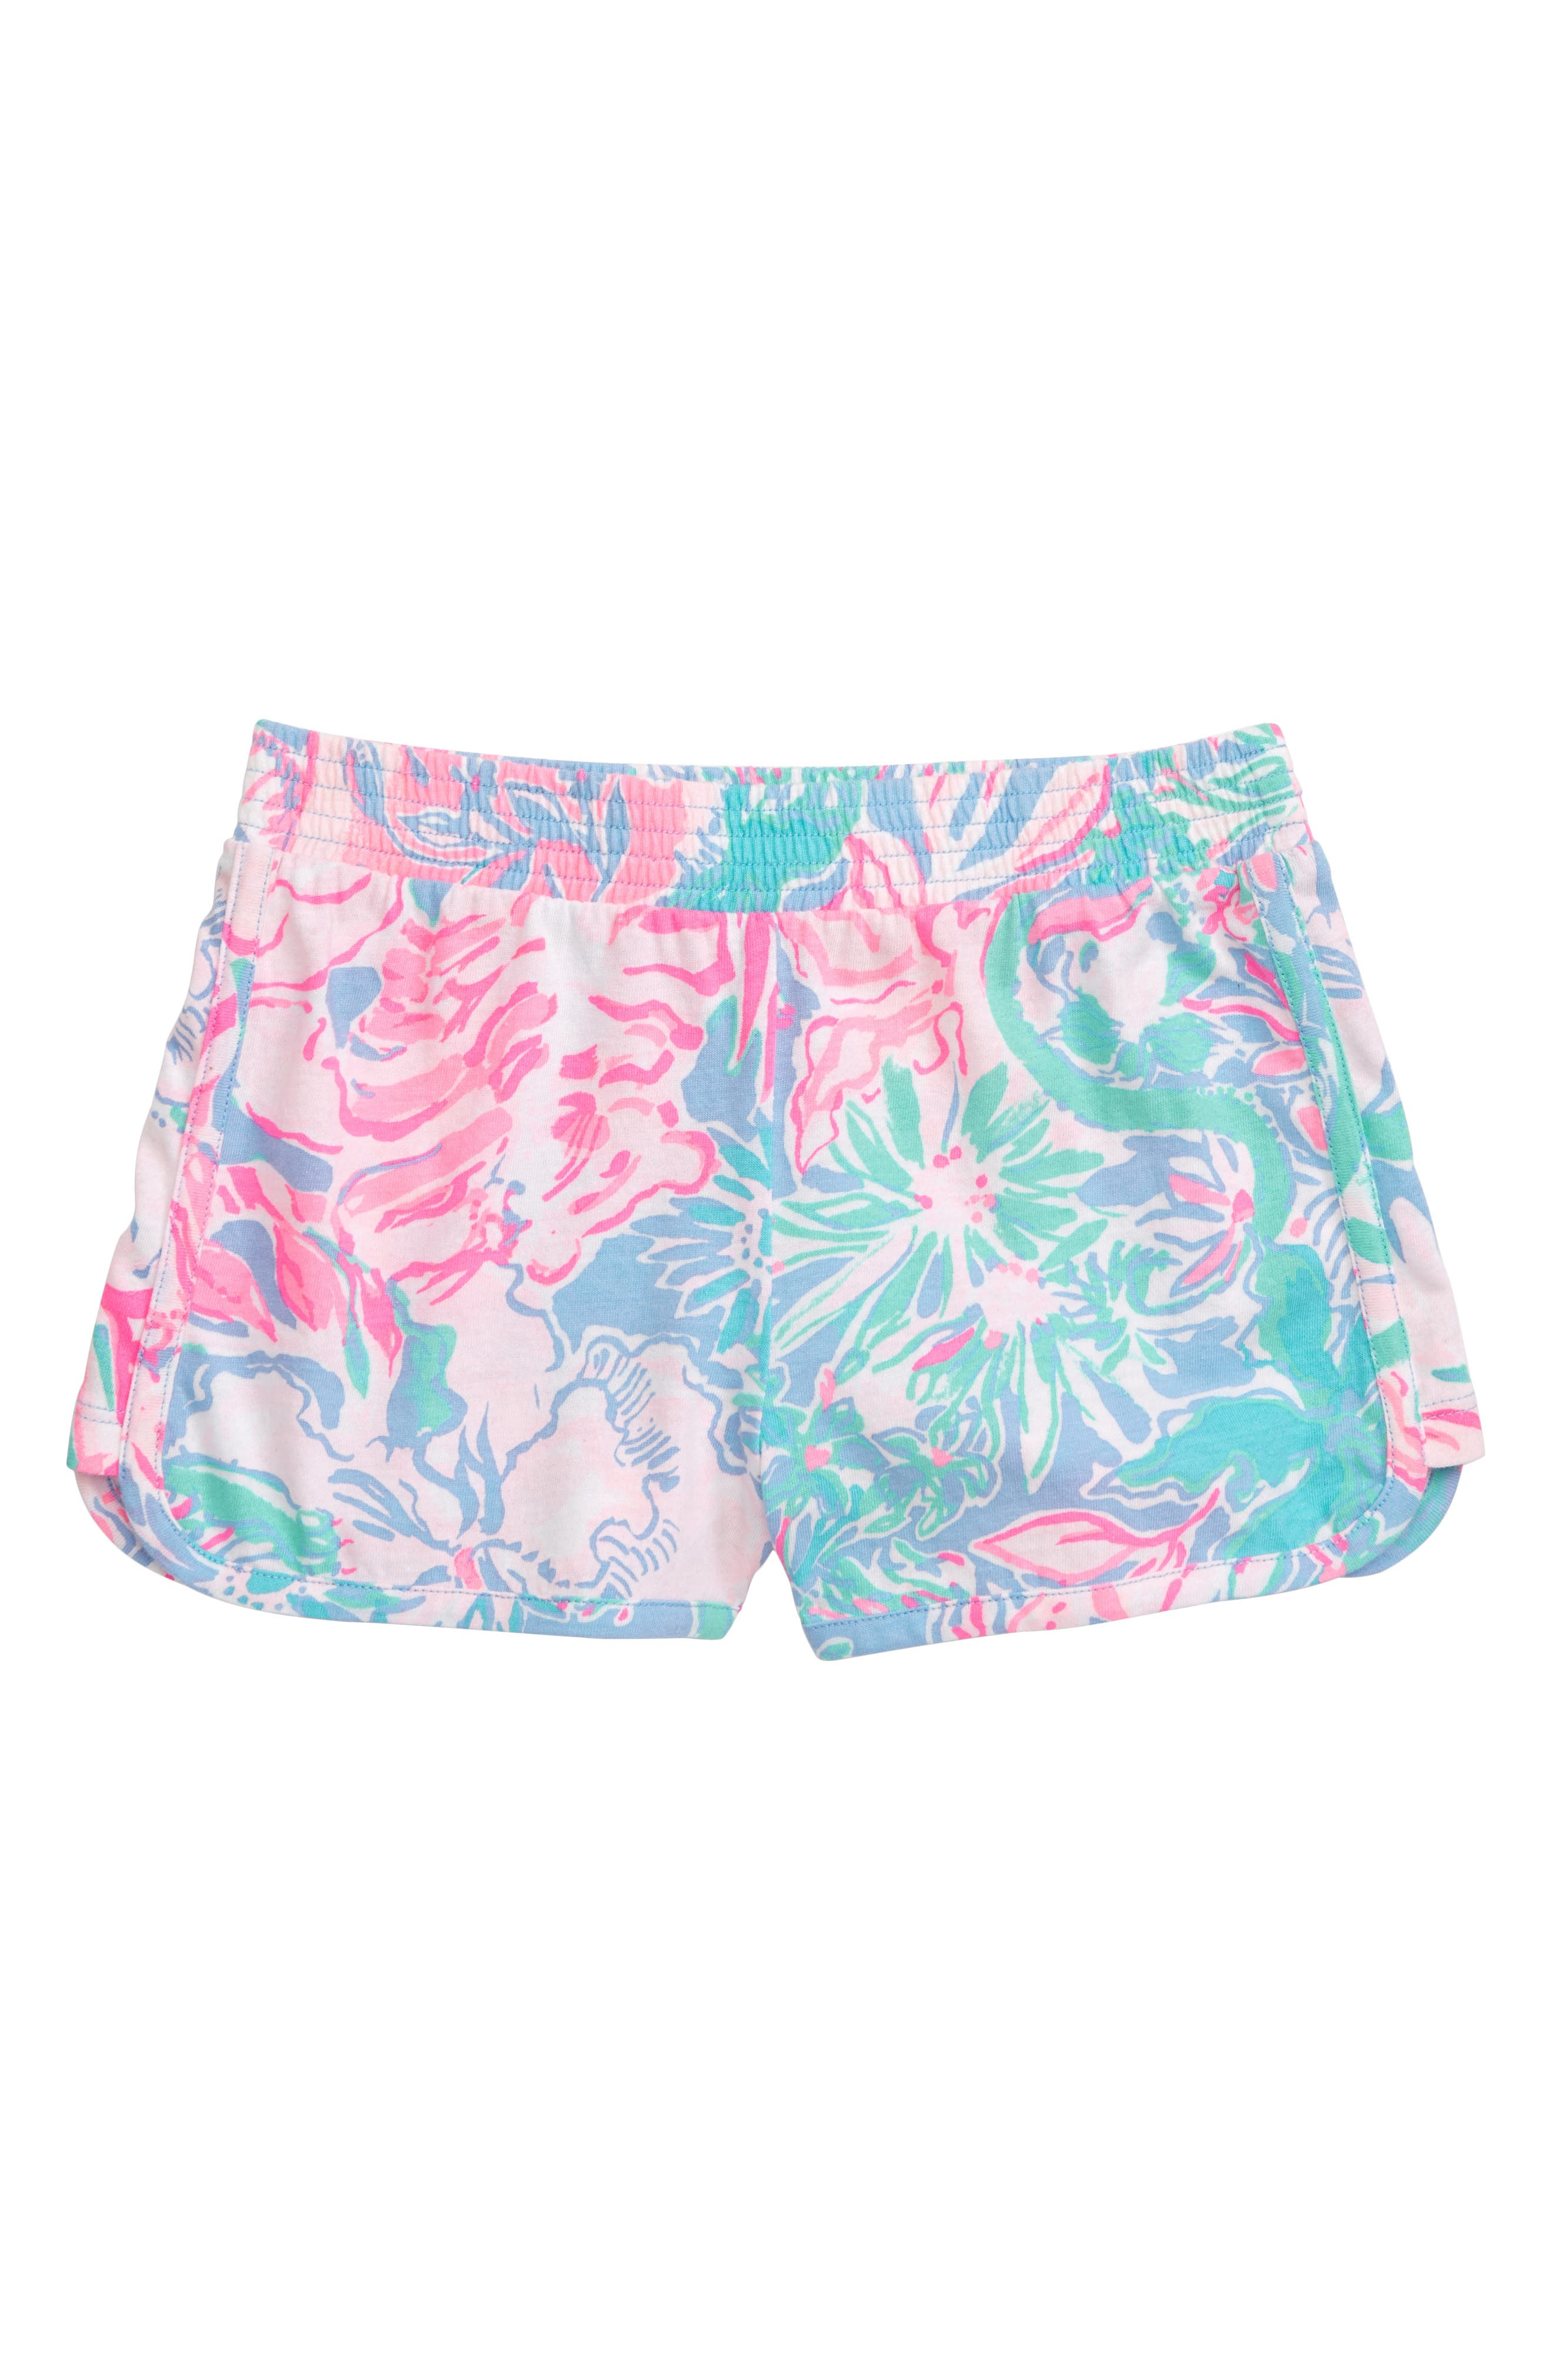 Toddler Girls Lilly Pulitzer Cecile Shorts Size XS (23T)  Blue